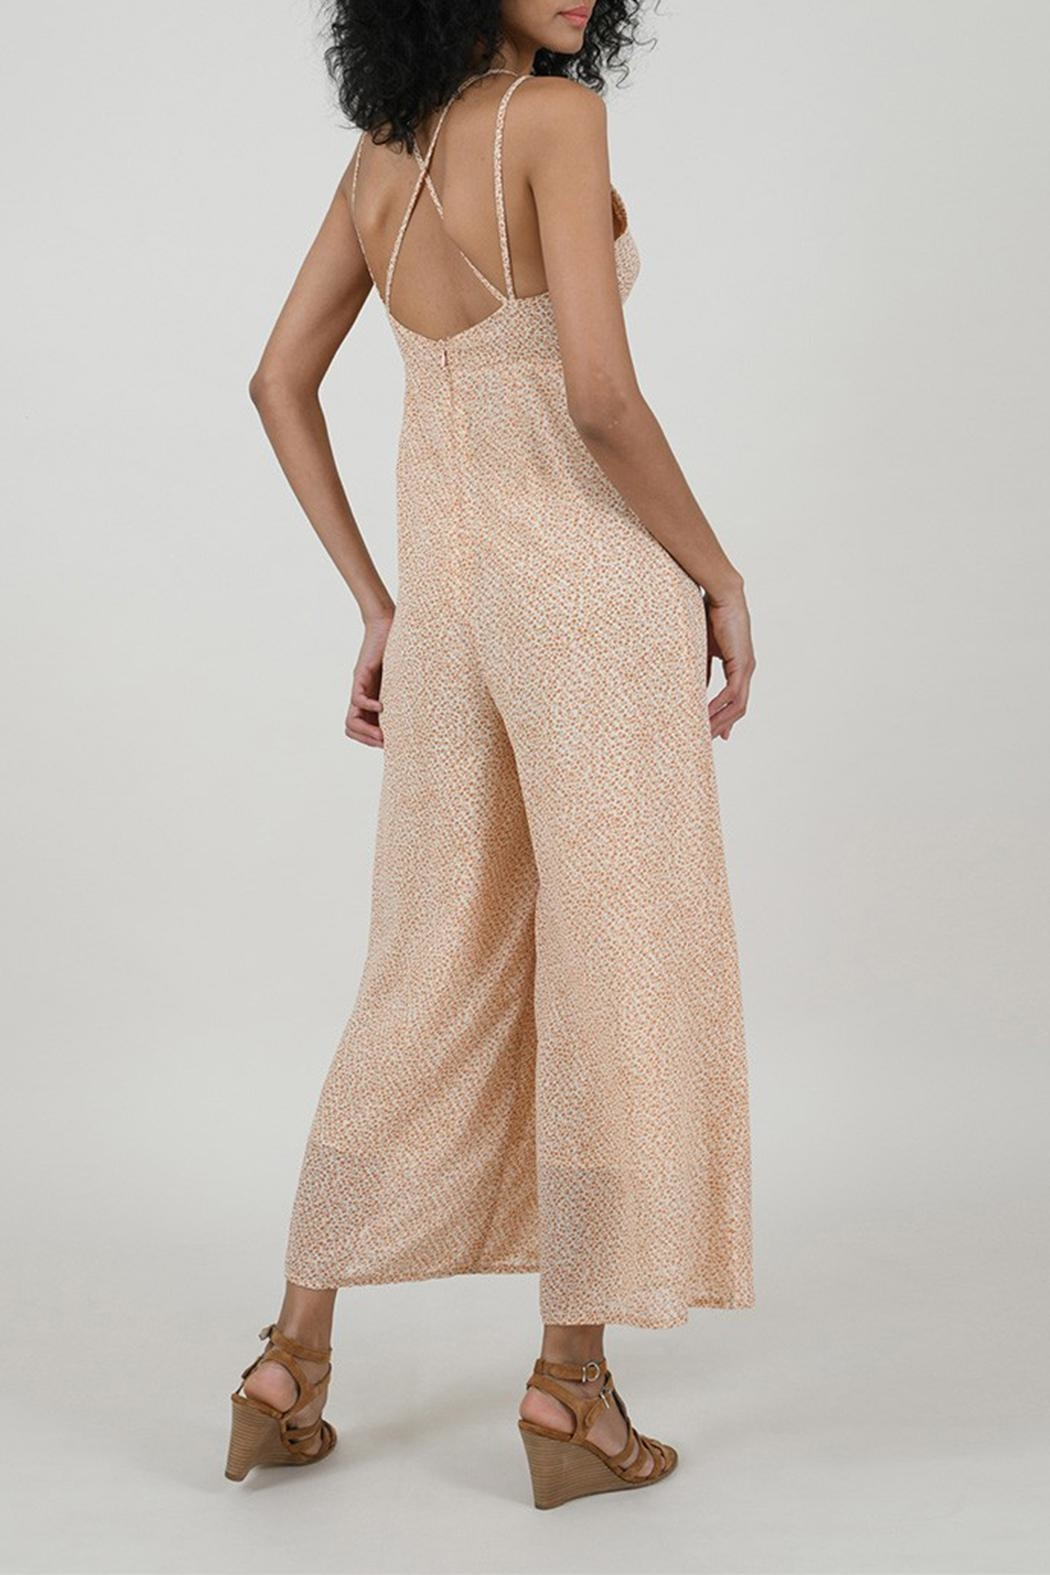 Molly Bracken Printed Jumpsuit - Side Cropped Image